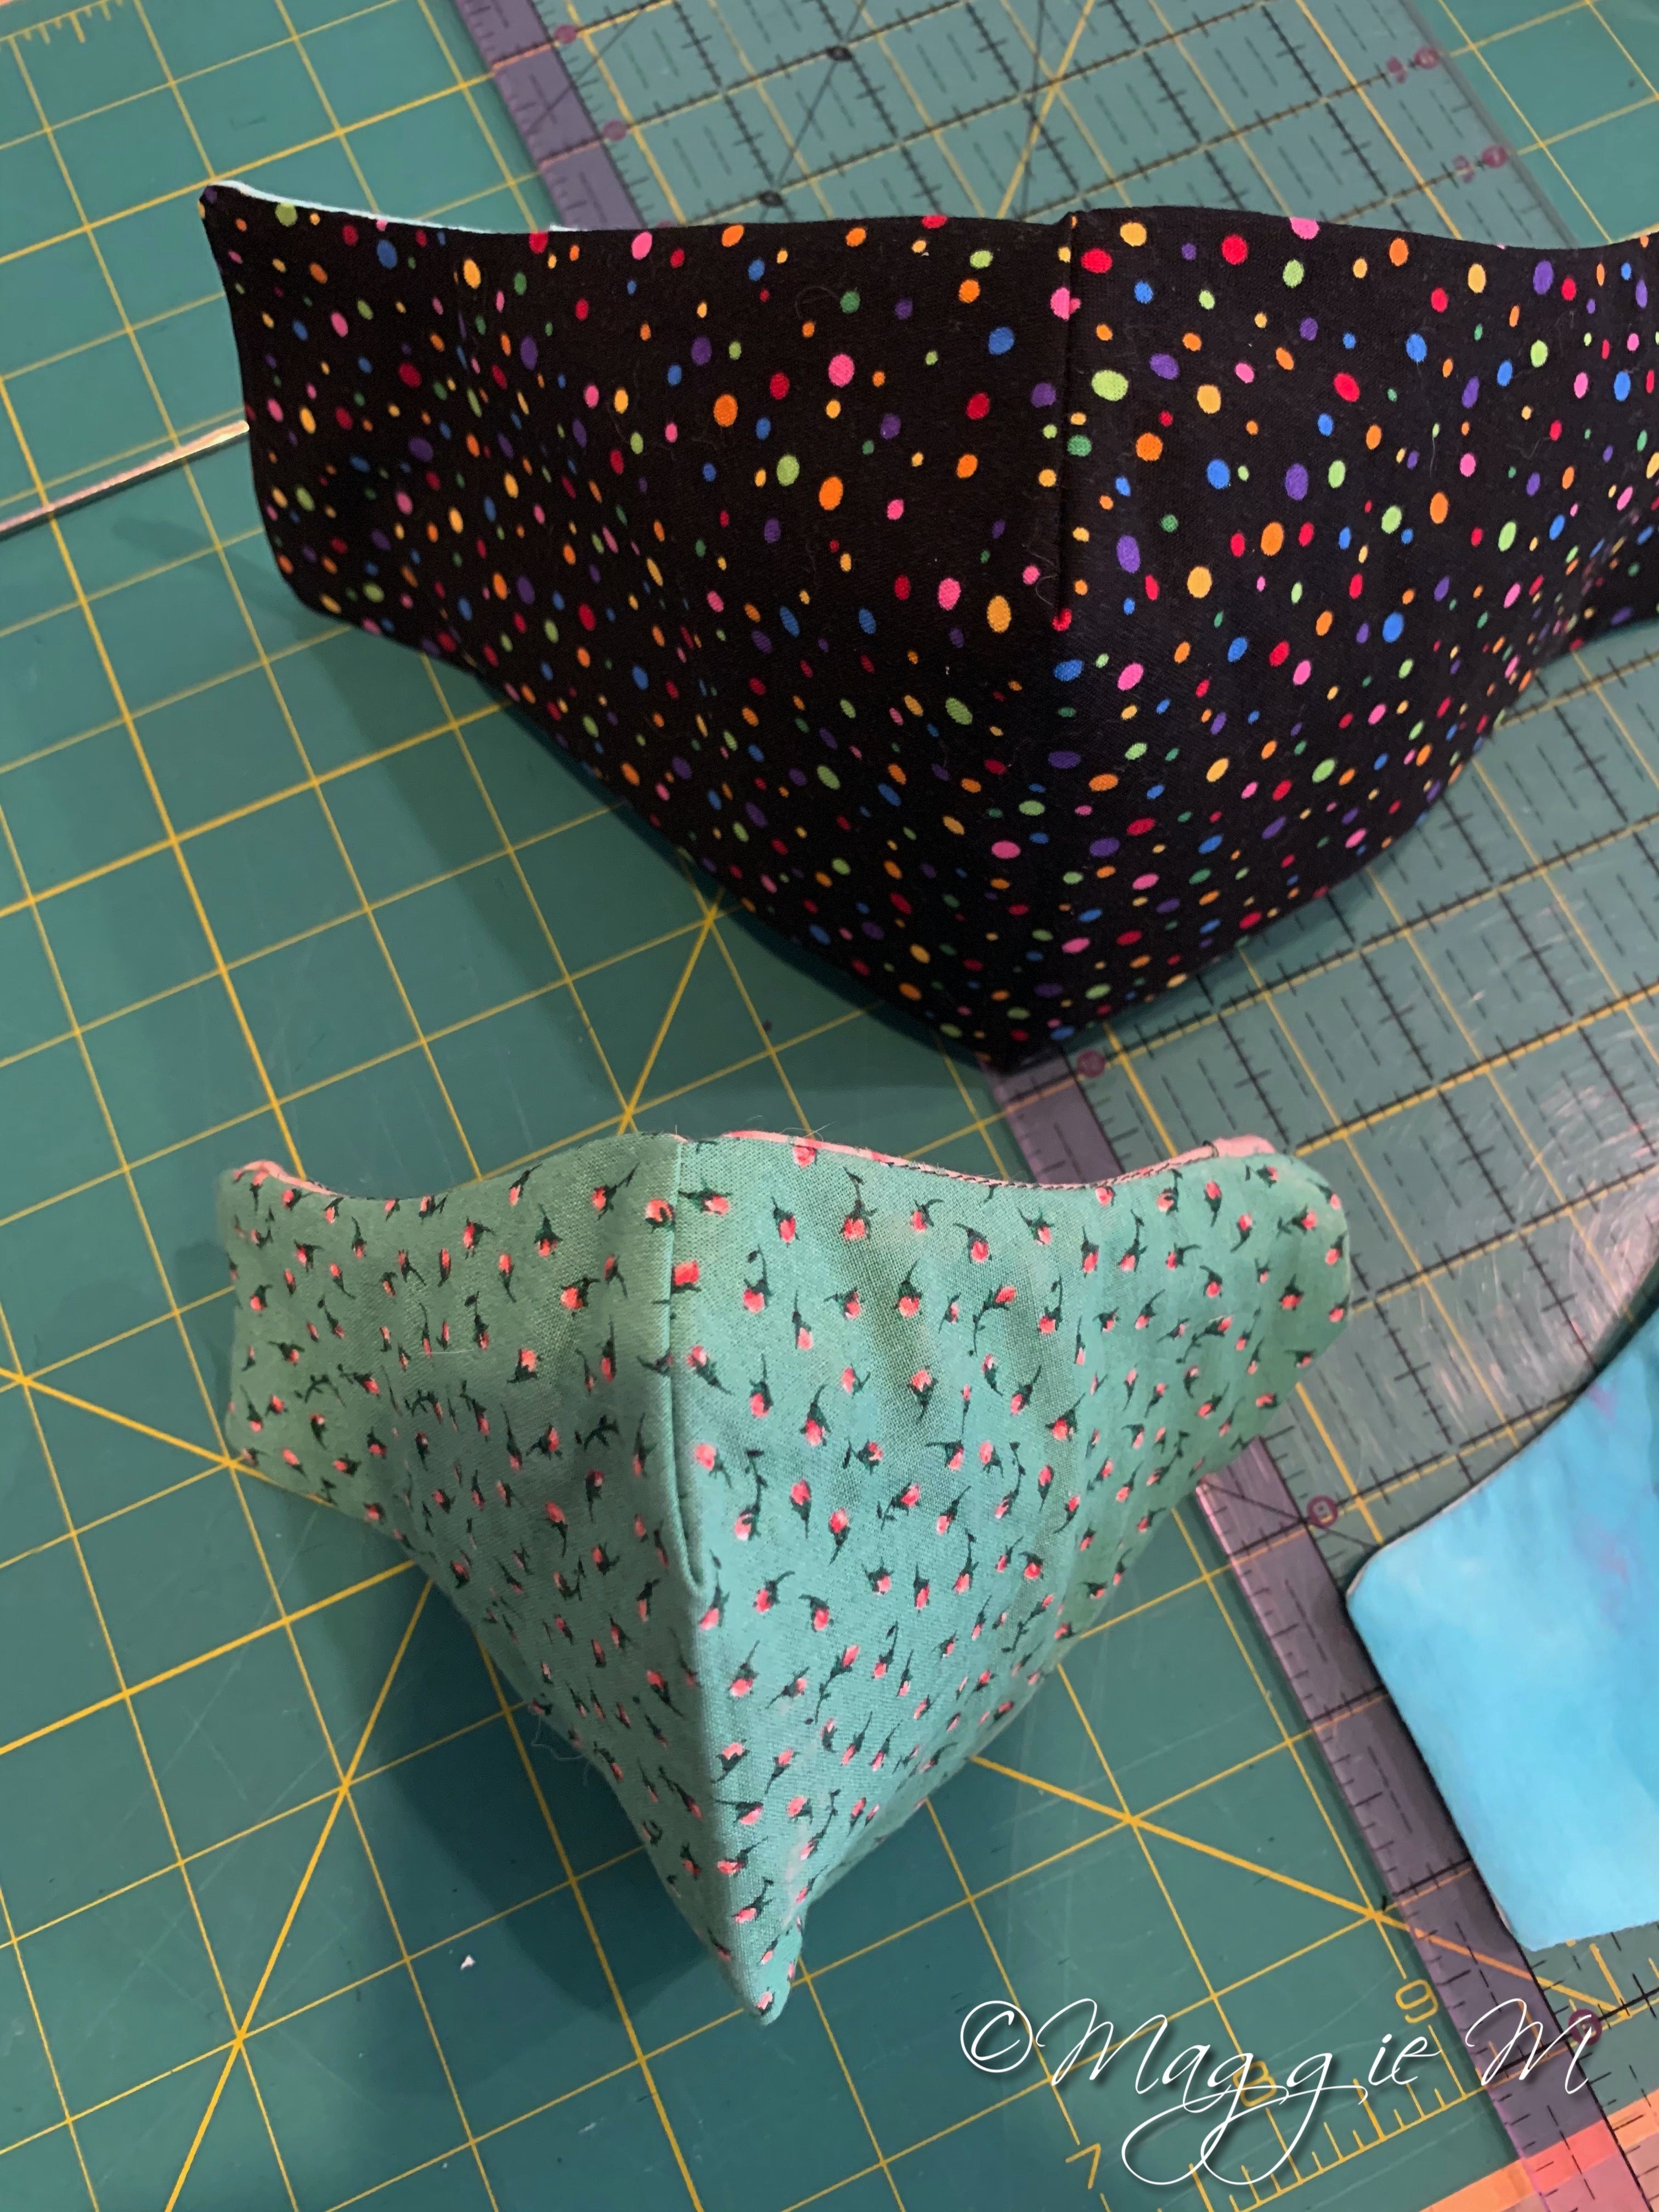 Free patterns in Facebook group Premier+2 PC and Mac